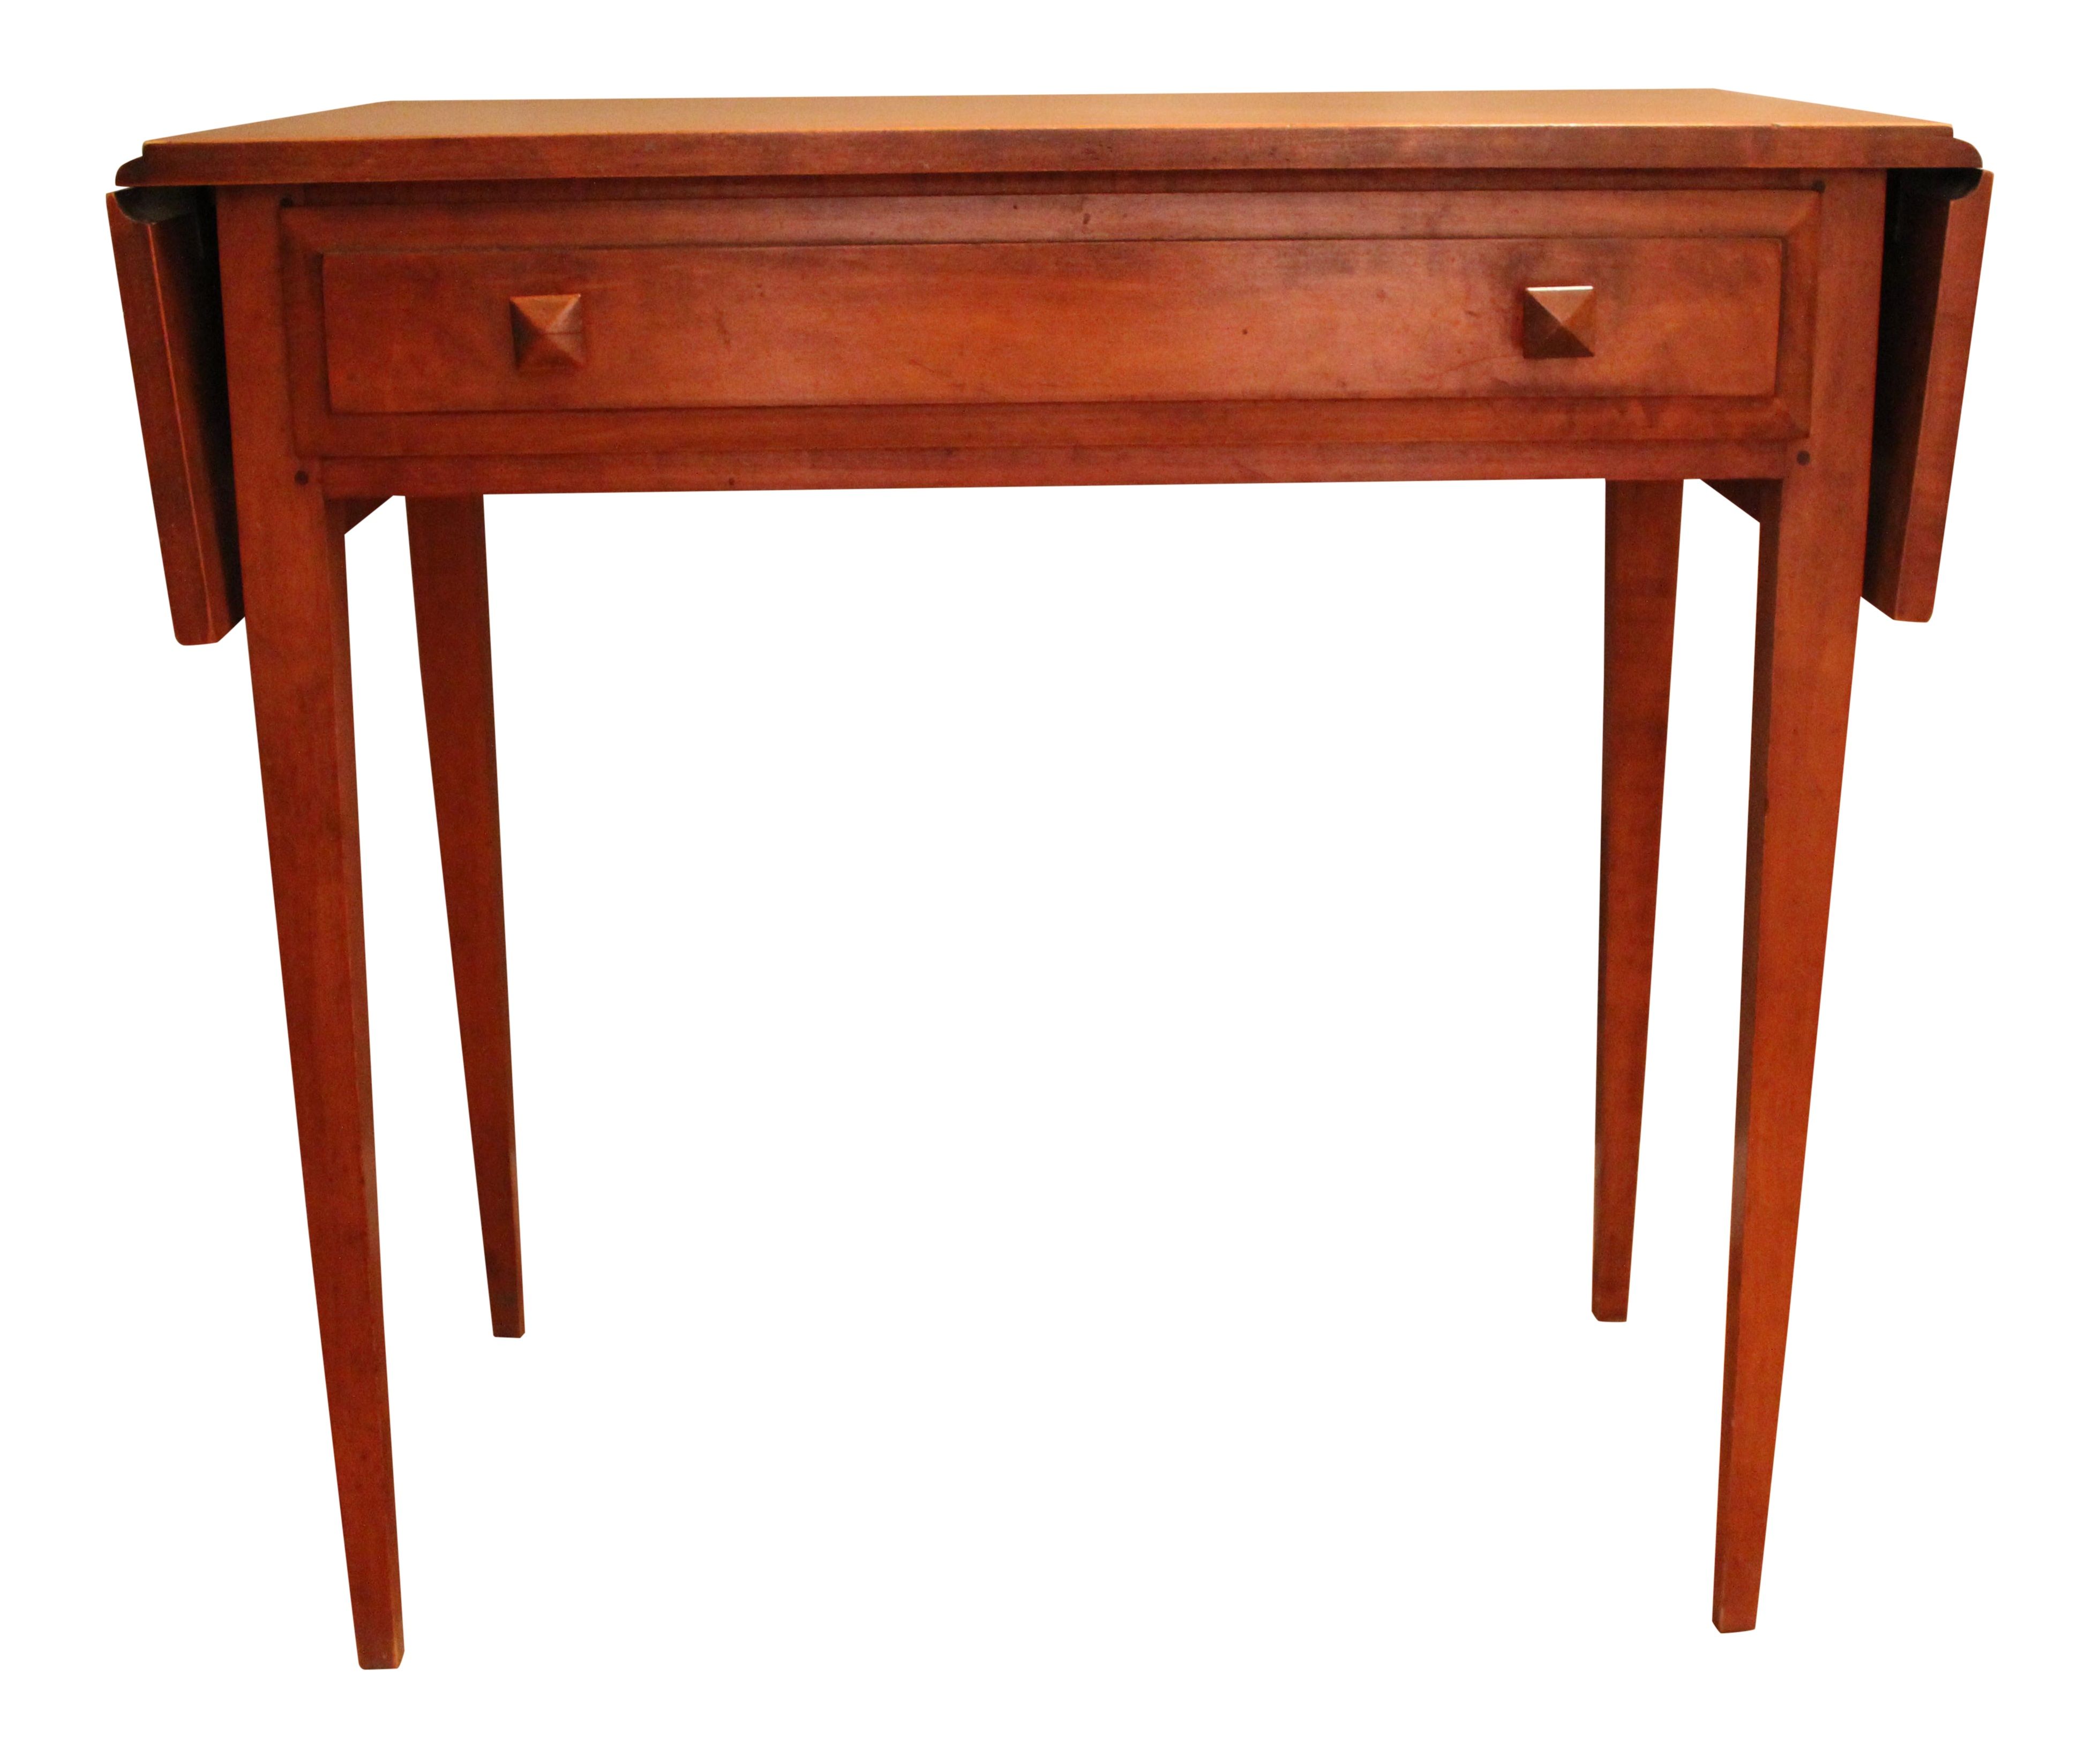 Trutype Maple Console Table